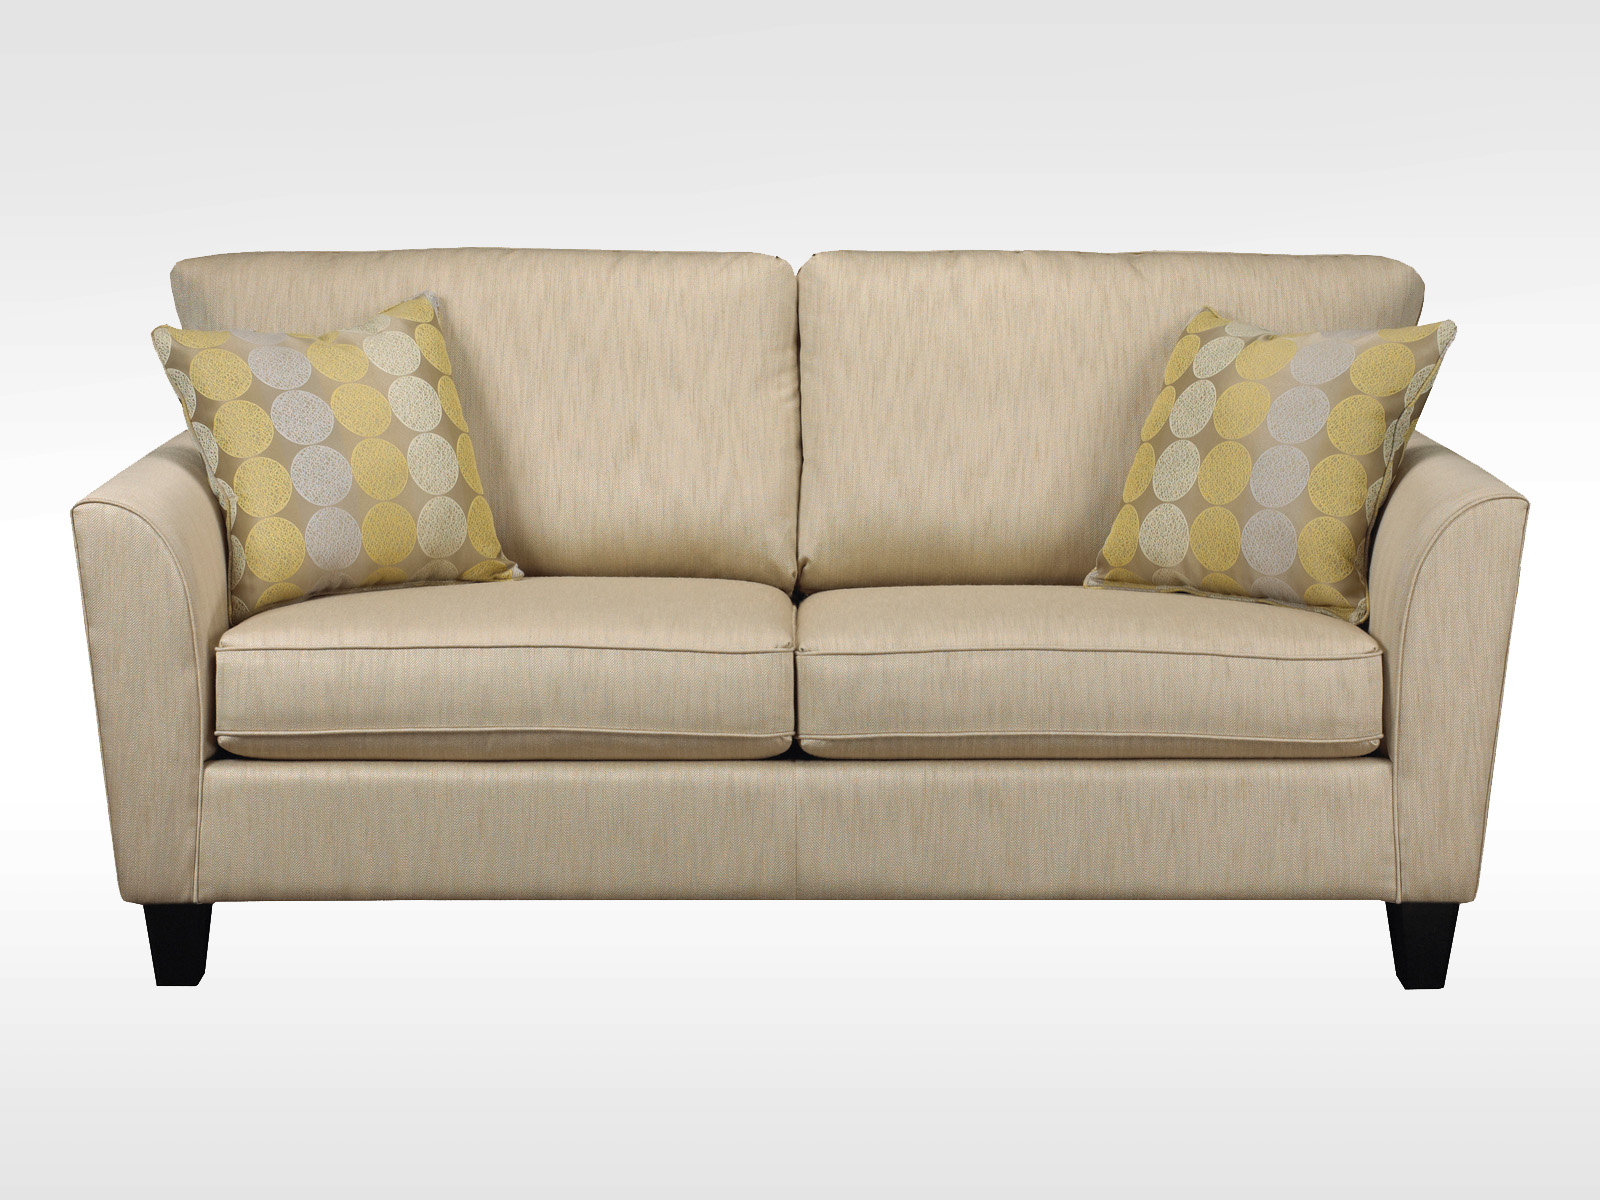 Canadian Made Sofas Toronto Canadian Sofas Modern Sectional Sofas And Corner Couches